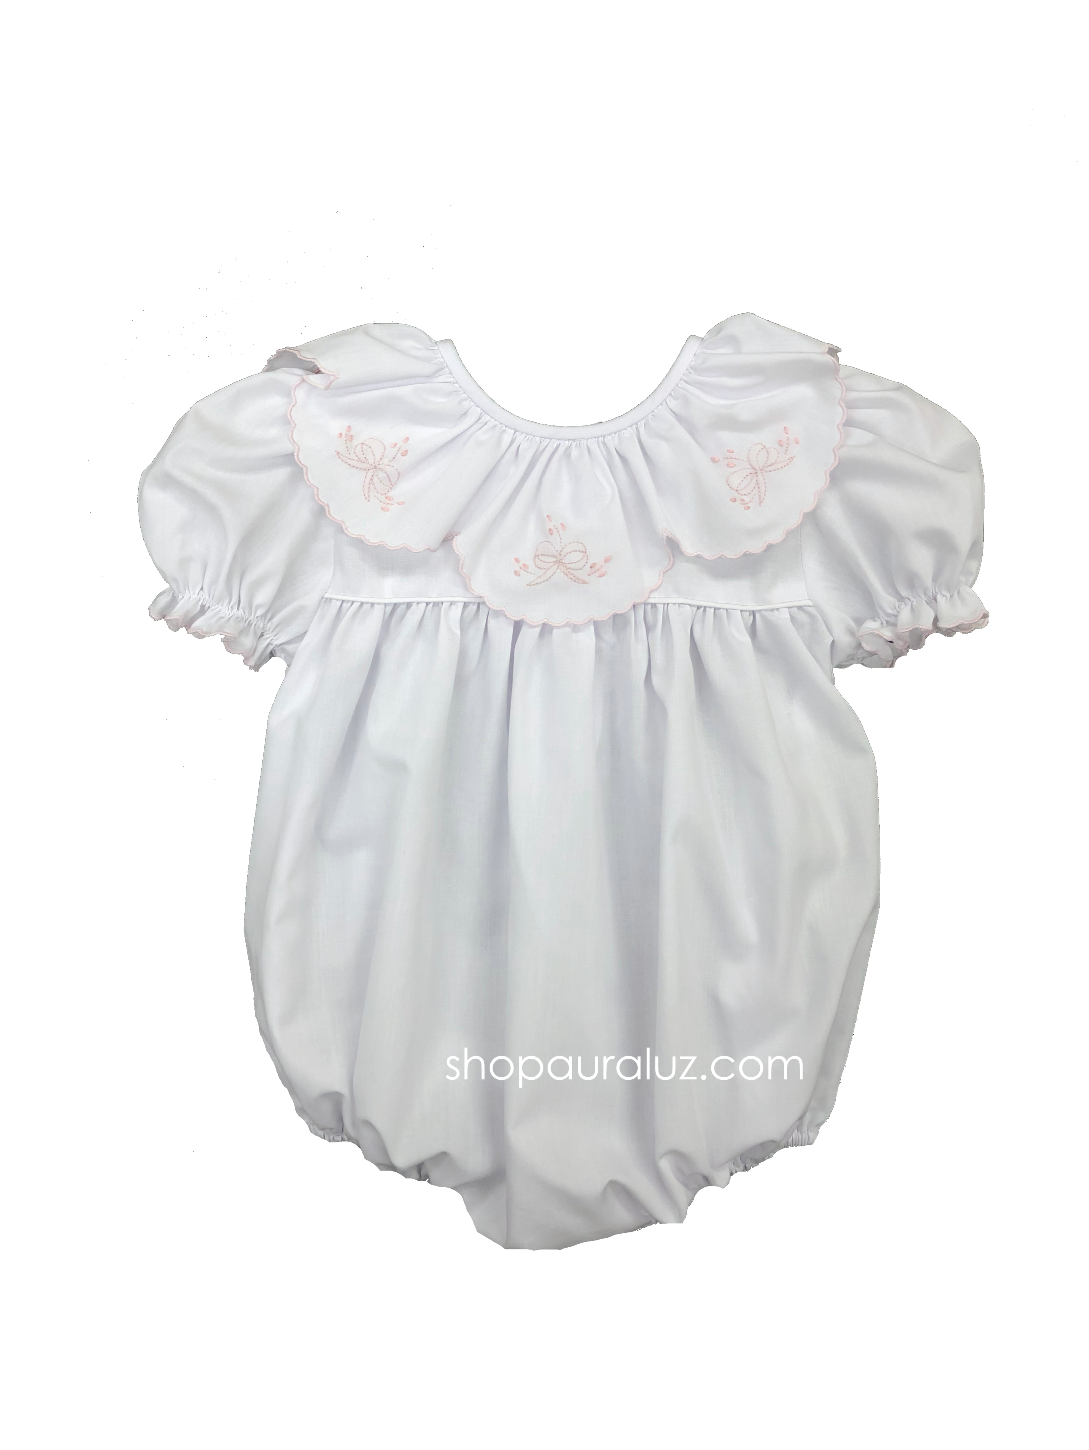 Auraluz Bubble...White with ruffle collar and pink embroidered bows